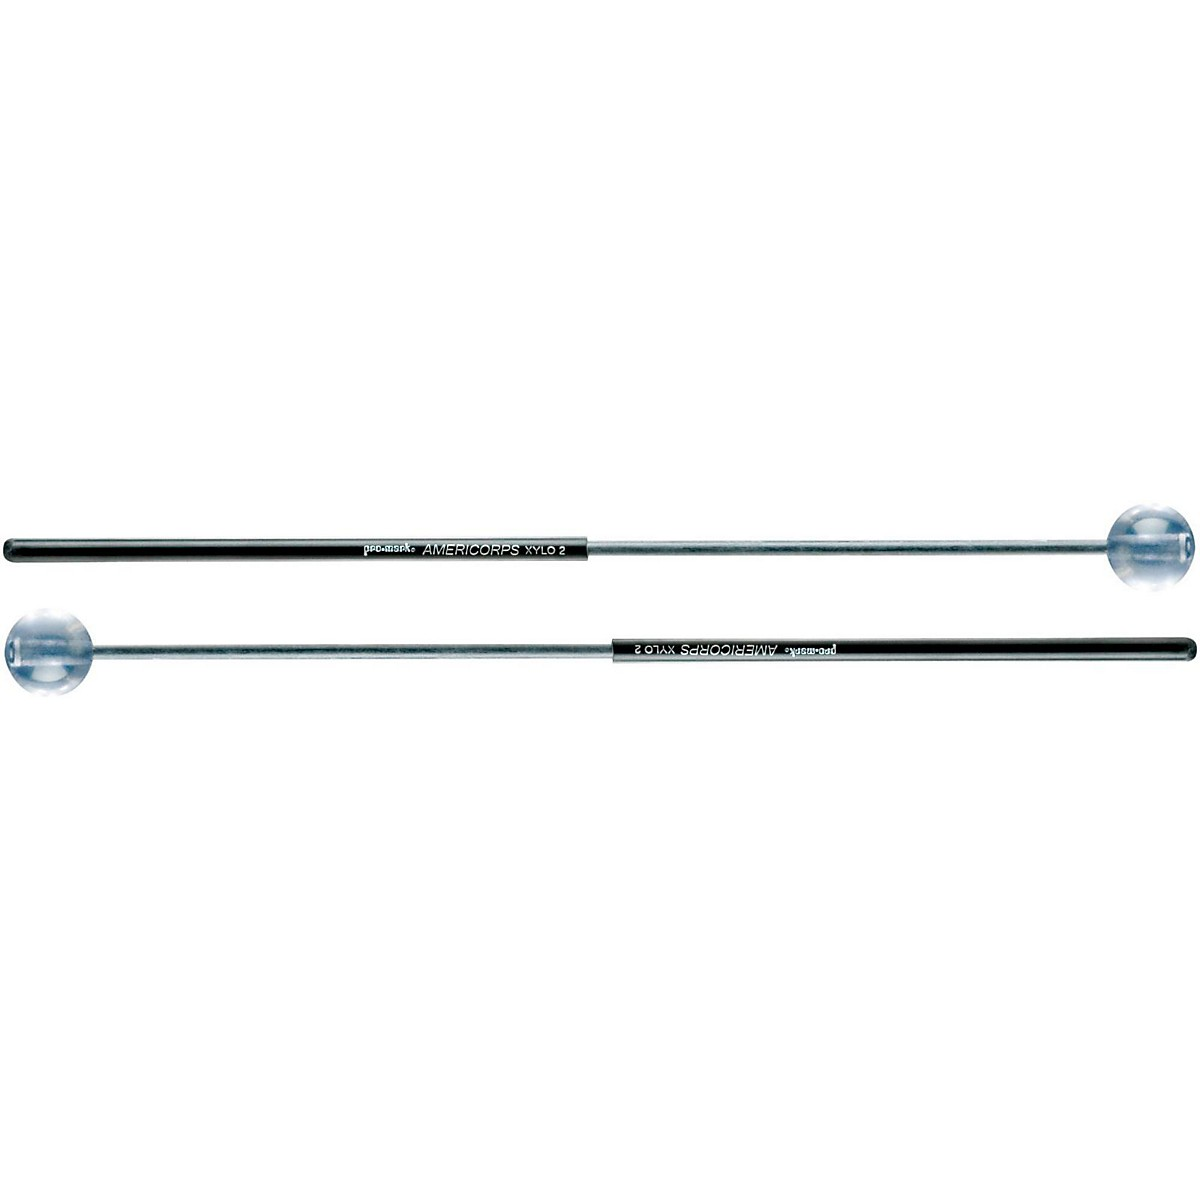 Promark Americorps Xylophone/Bell Mallets